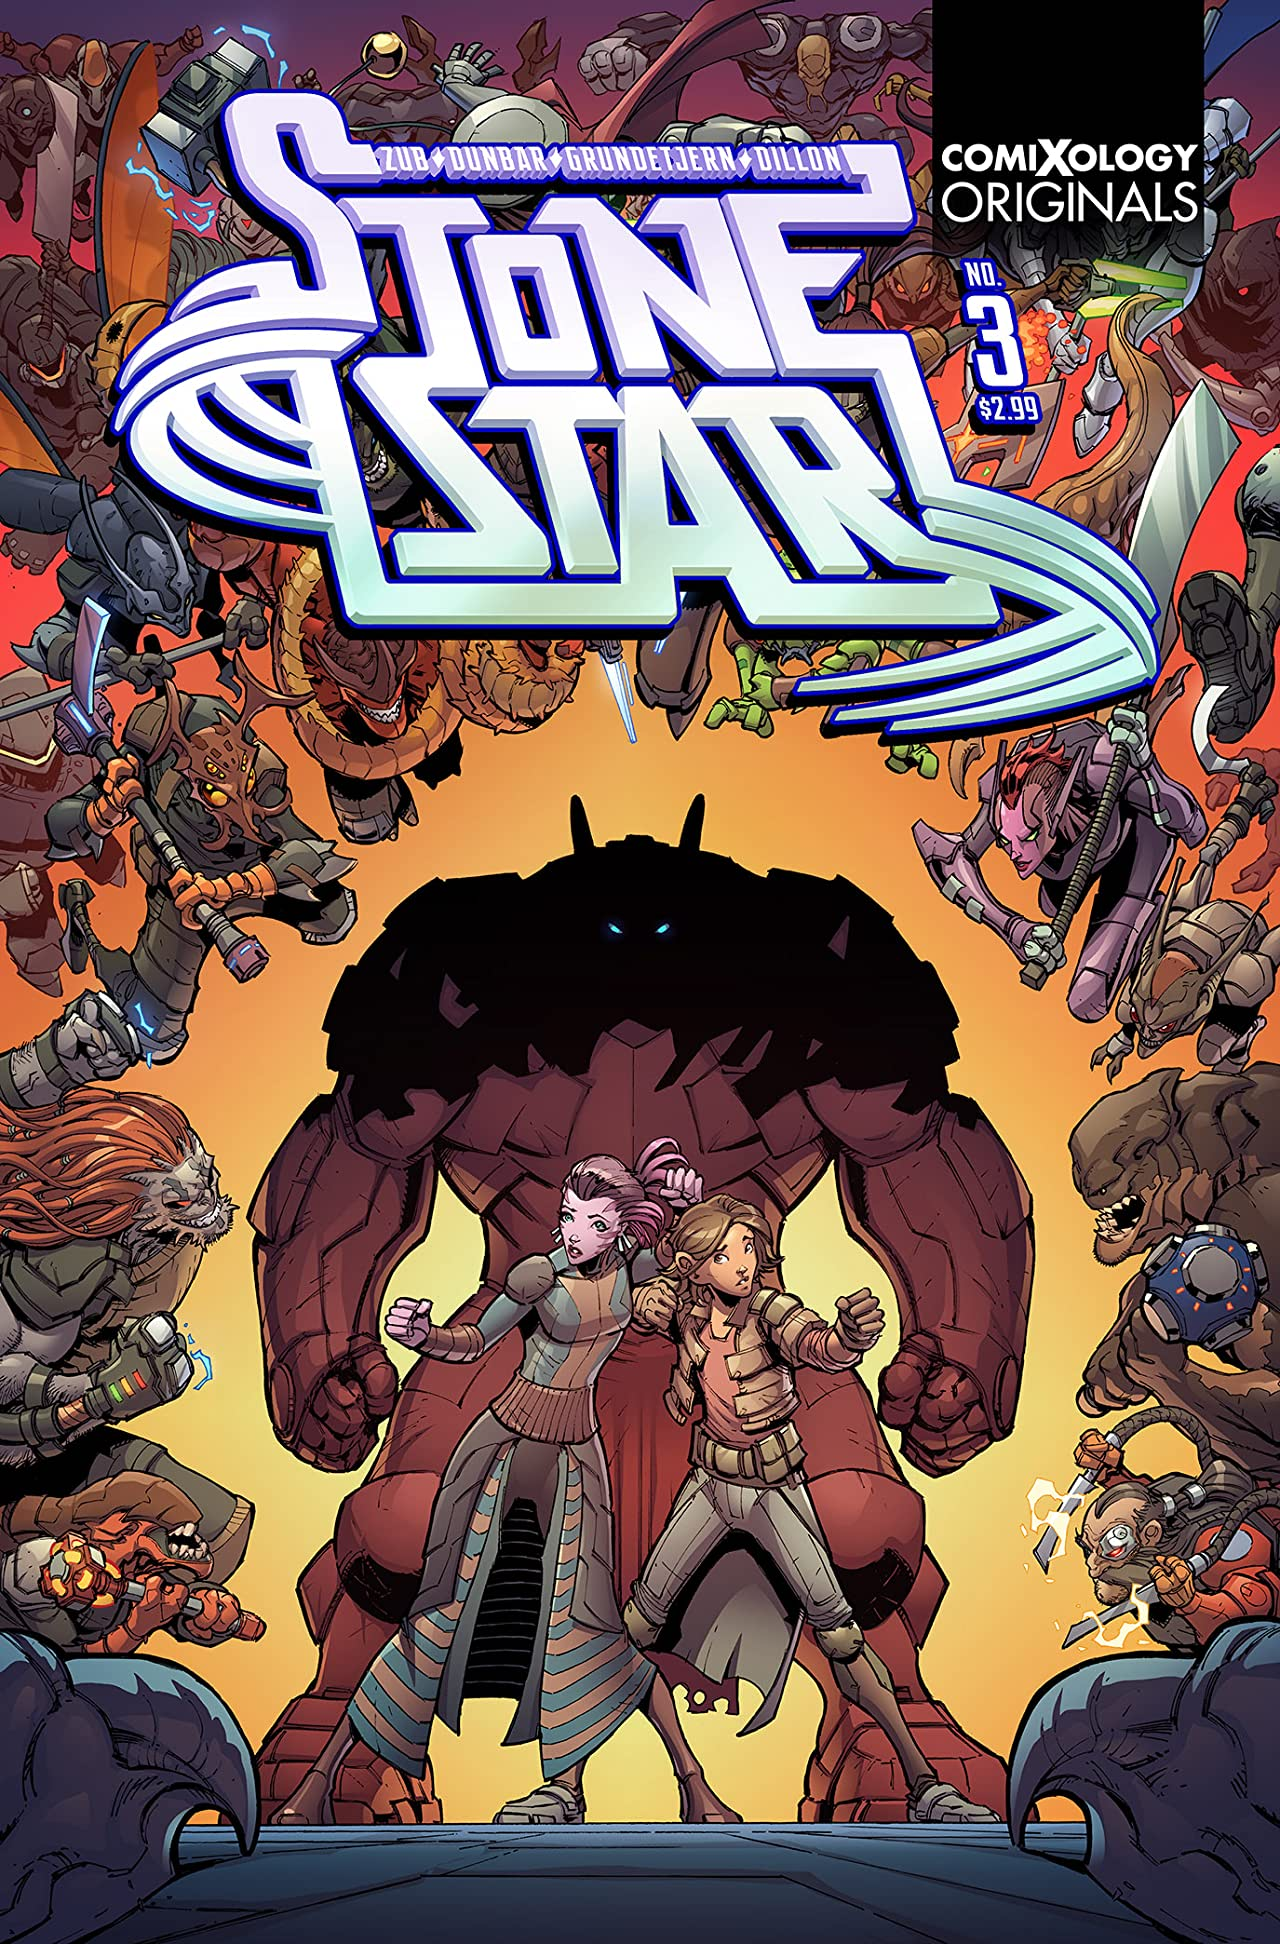 Stone Star (comiXology Originals) #3 (of 5)